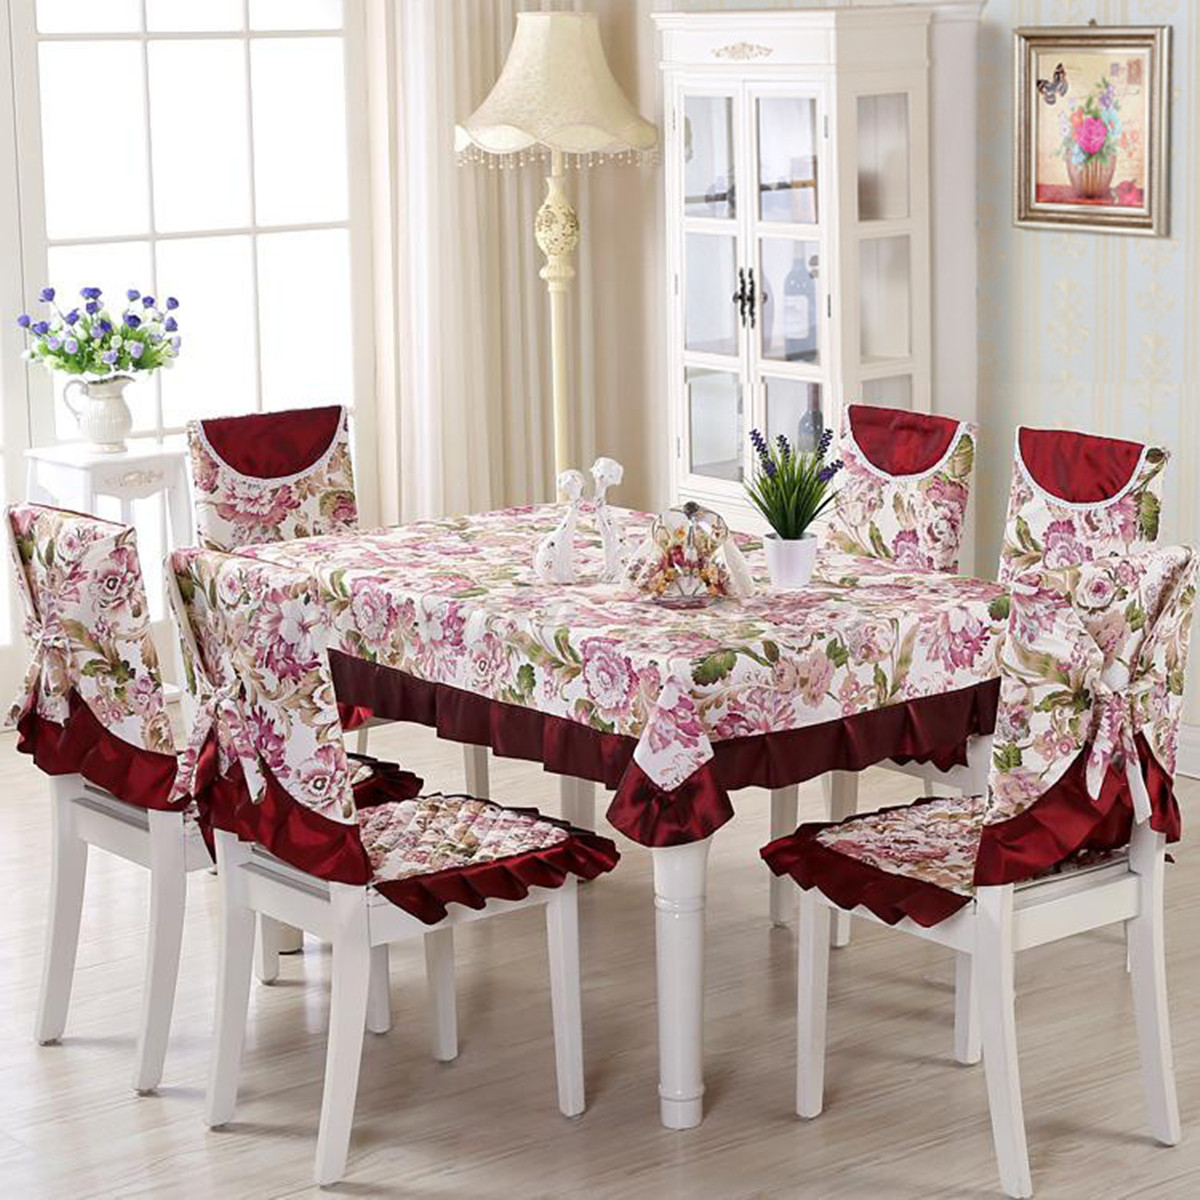 Vintage Floral Tablecloths Chair Cover Polyester Banquet